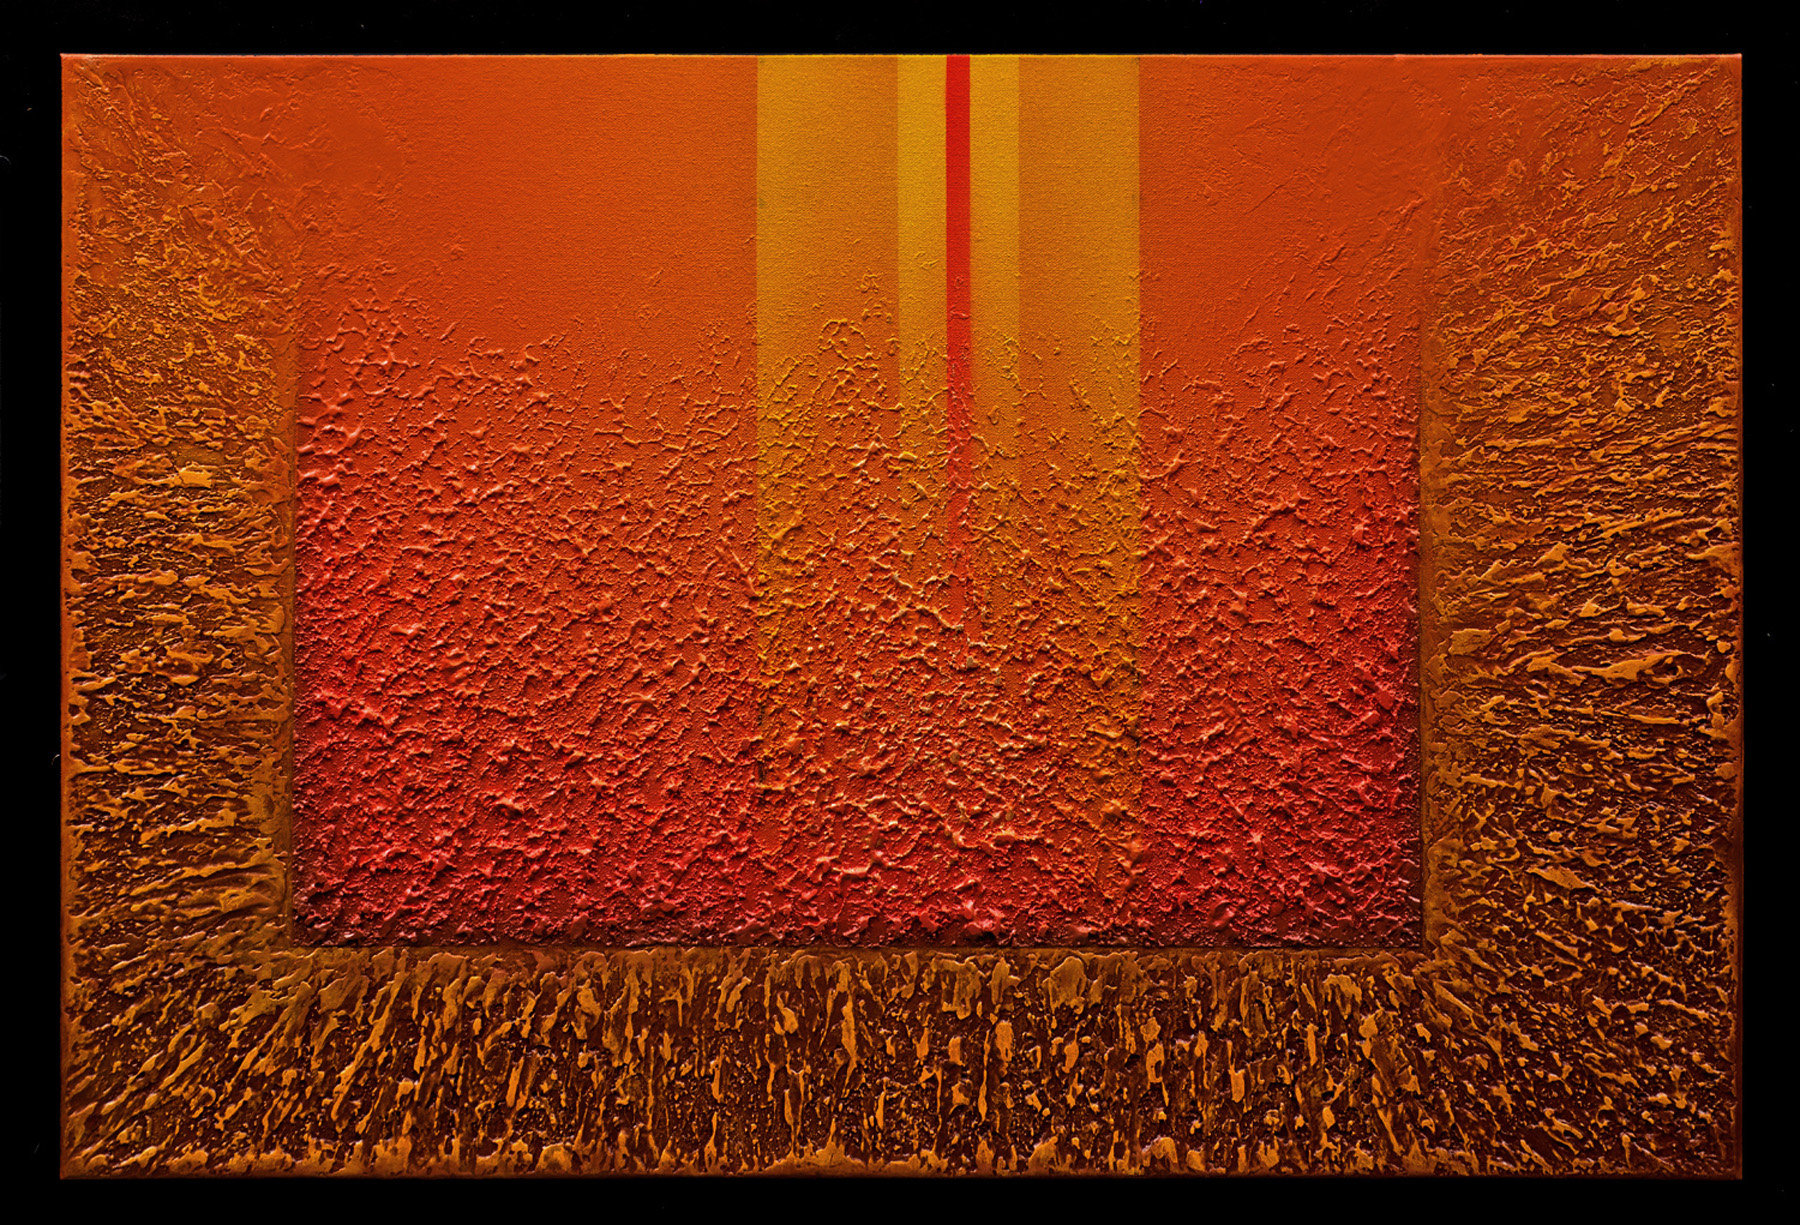 Radiant textures series 12 by wolfgang gersch acrylic for Acrylic mural painting techniques